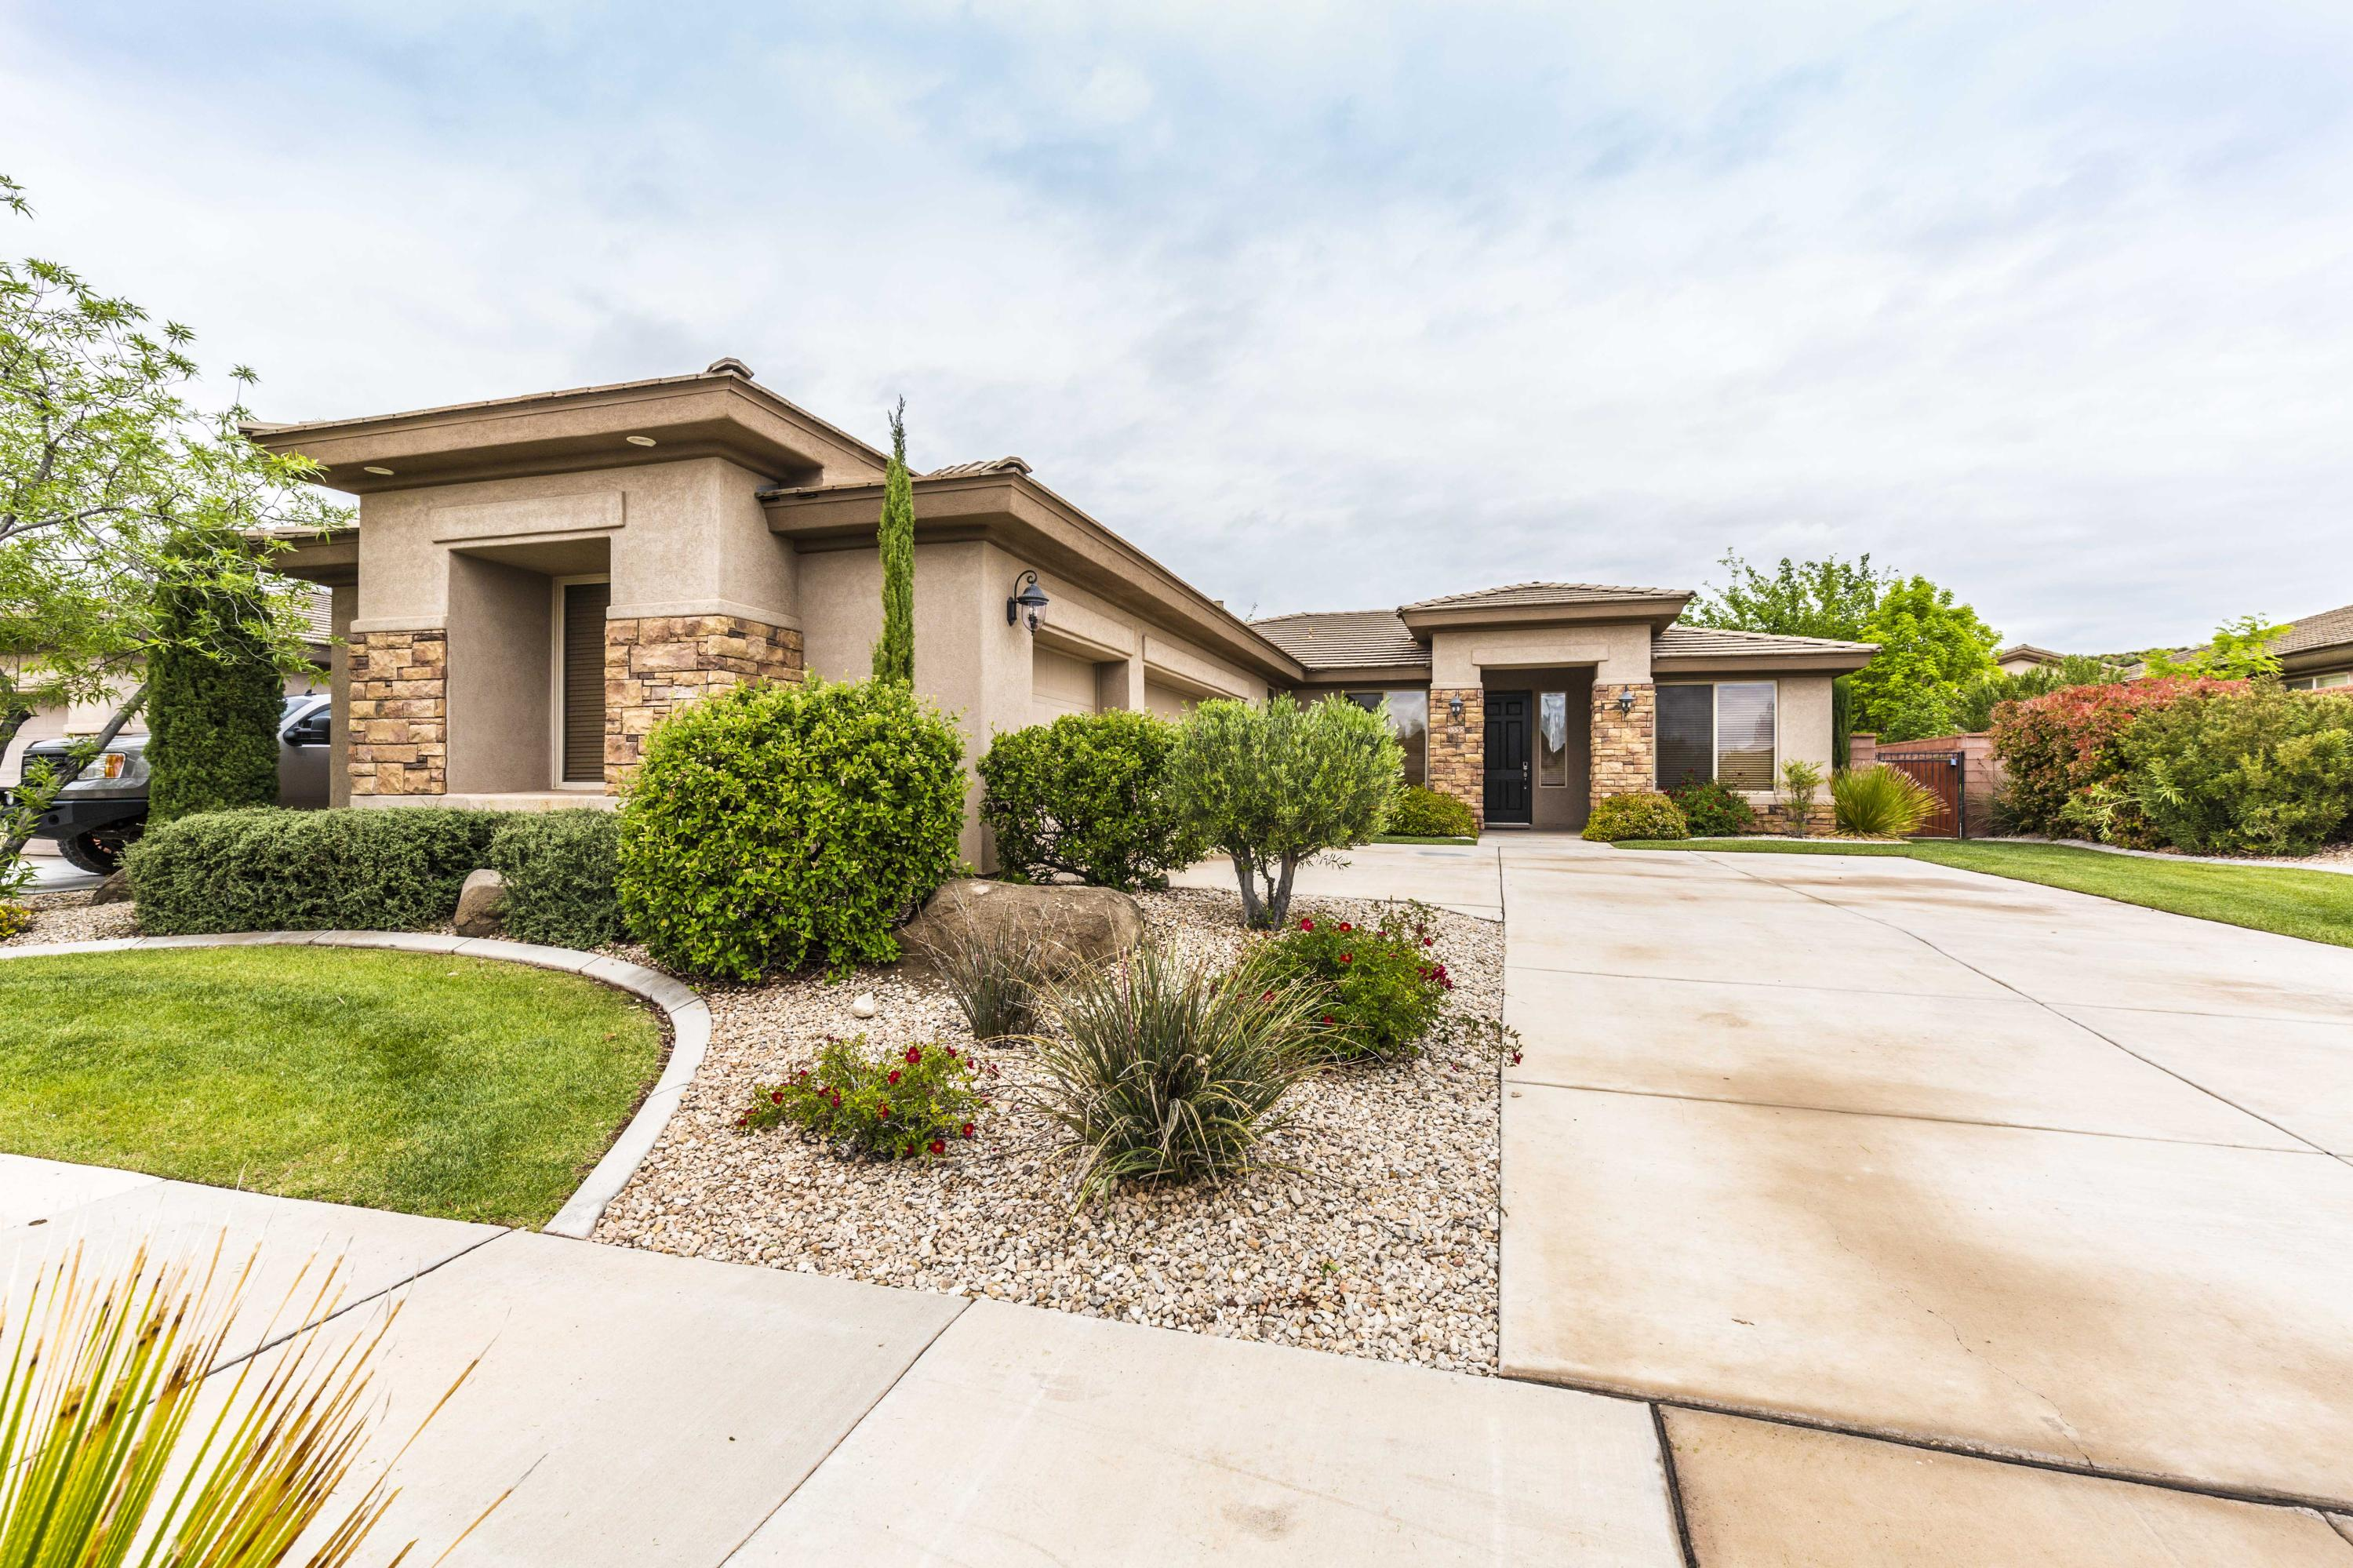 3335 E Sweetwater Springs Dr, Washington Ut 84780